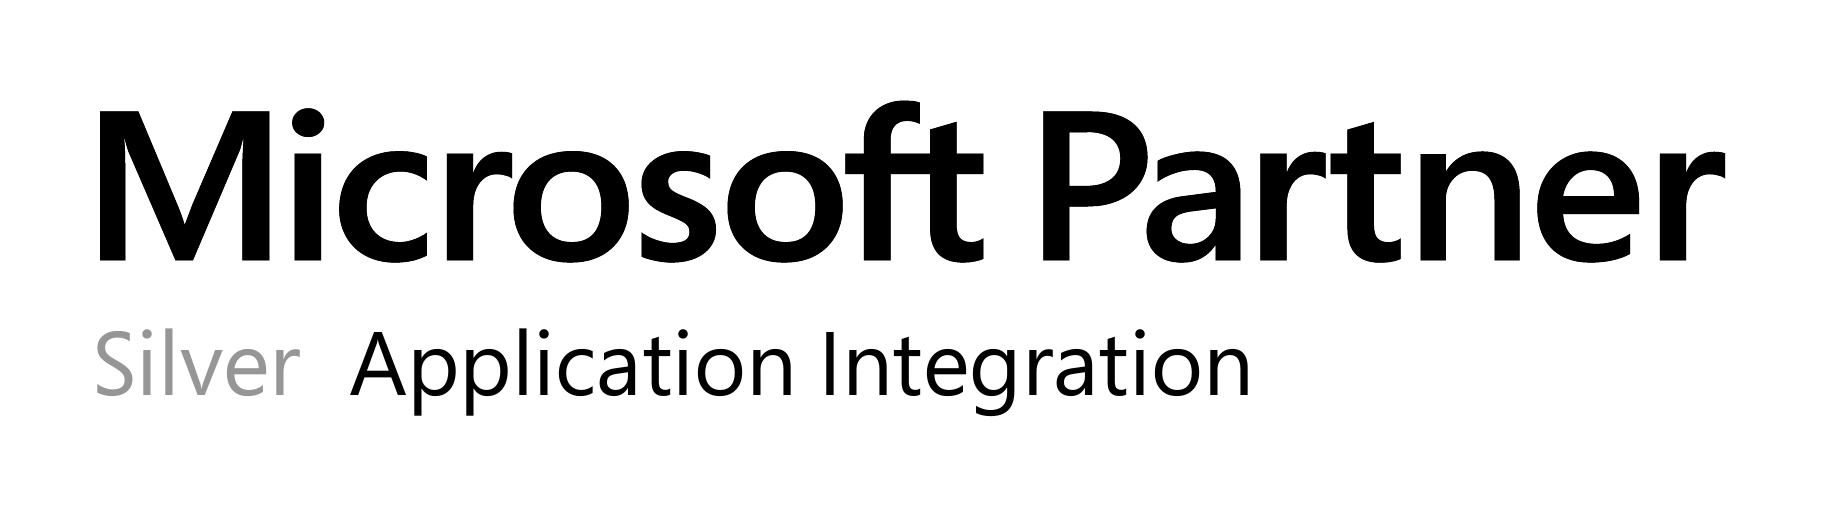 Partner Microsoft ITS Consulting BizTalk Application Integration